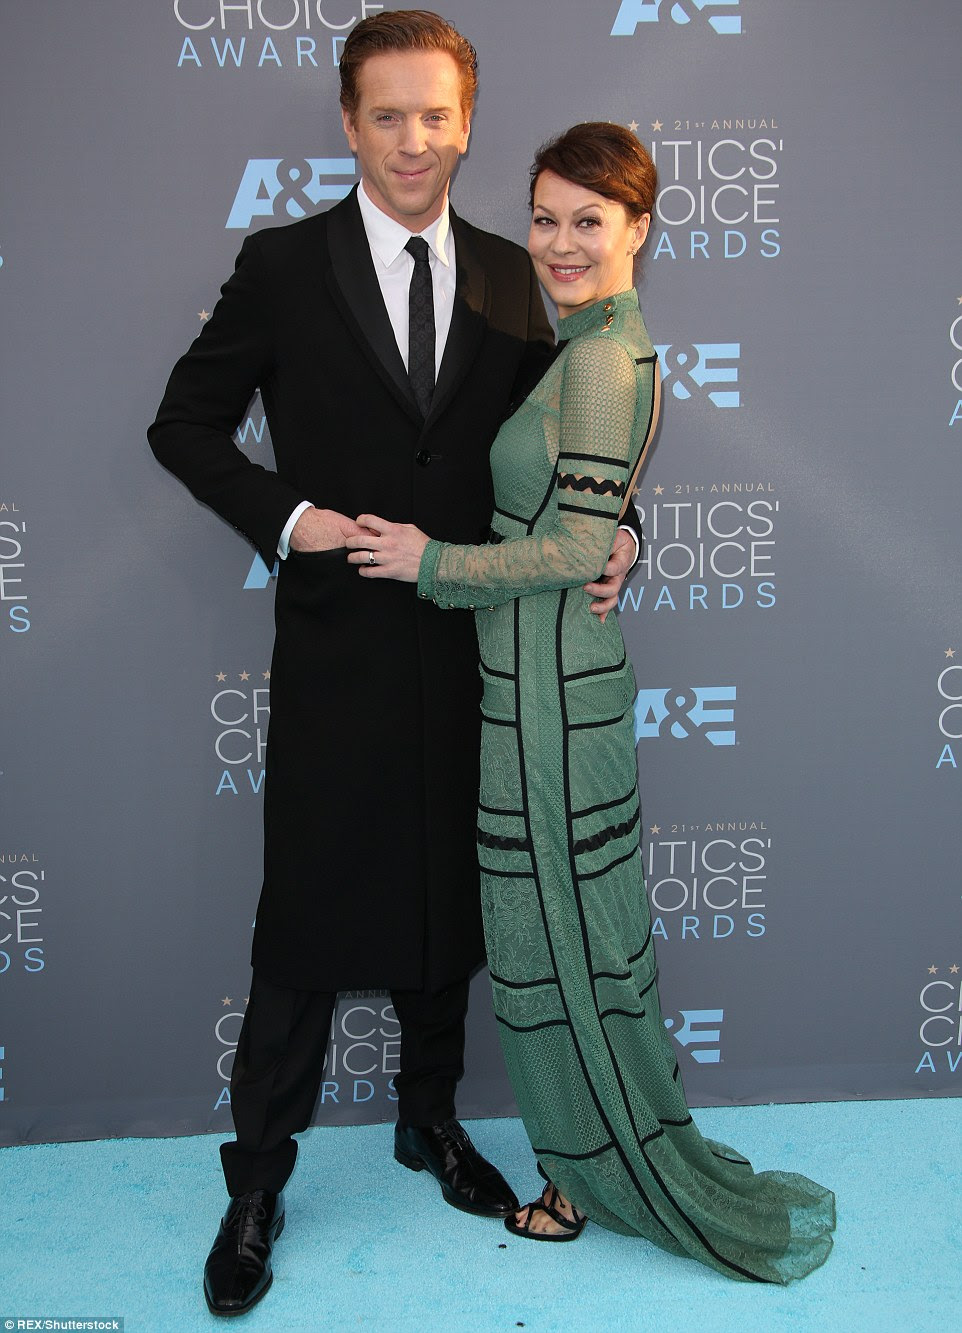 Proud husband: Damian Lewis was there for wife Helen McCrory, who was nominated for Best Supporting Actress In A Drama Series for Penny Dreadful